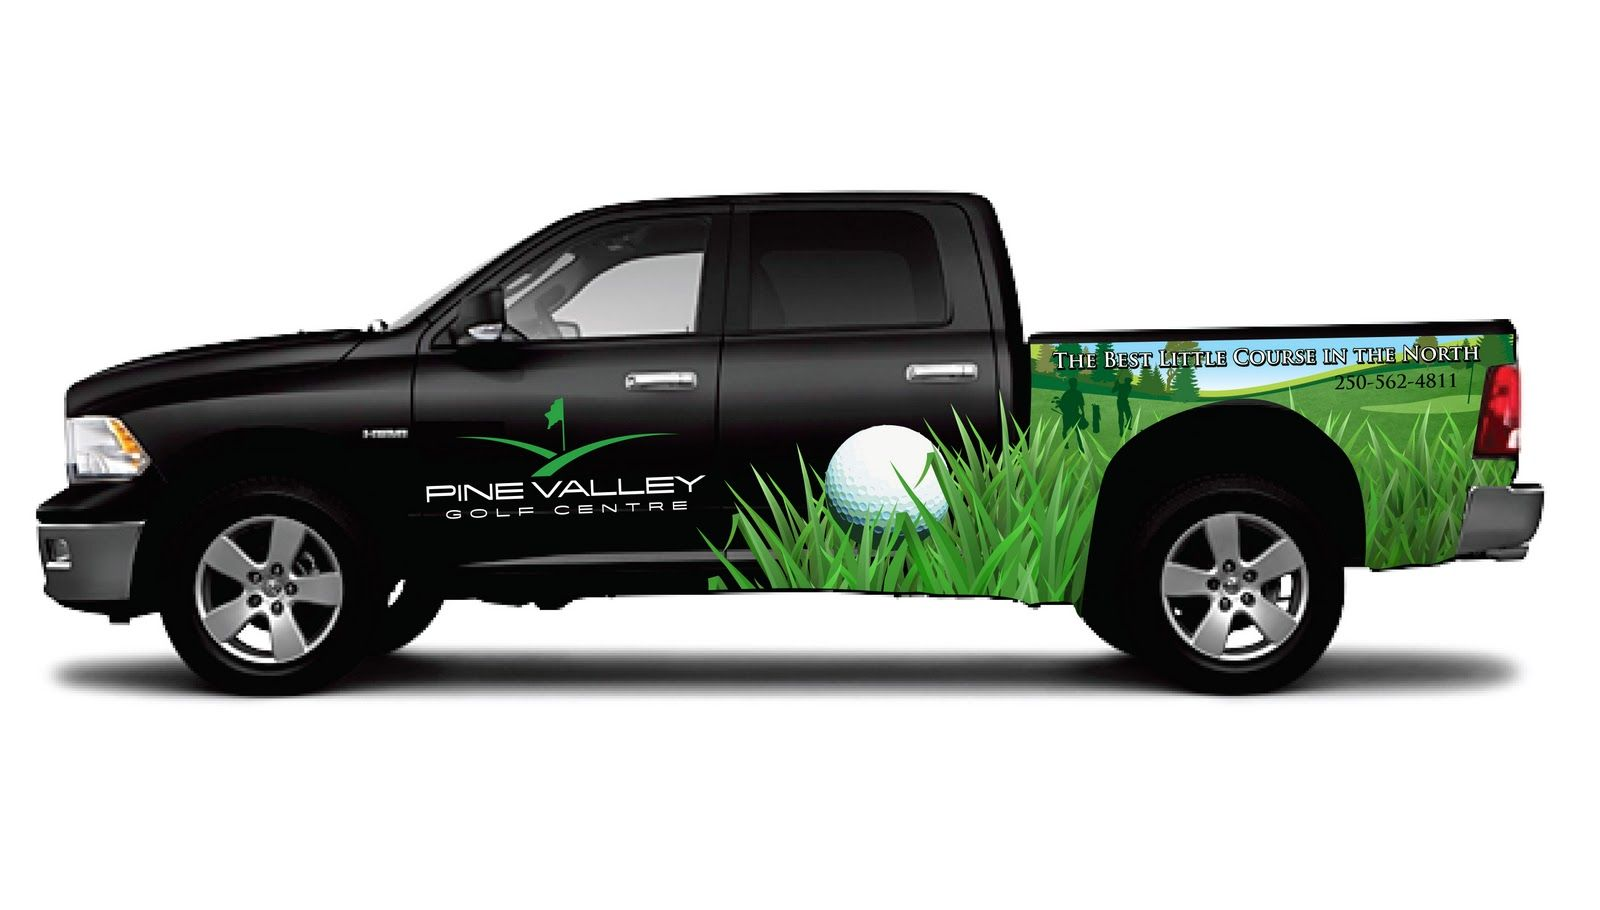 Partial Truck Wrap For A Golf Course Vehicle Signs Mobile - Graphics for a car